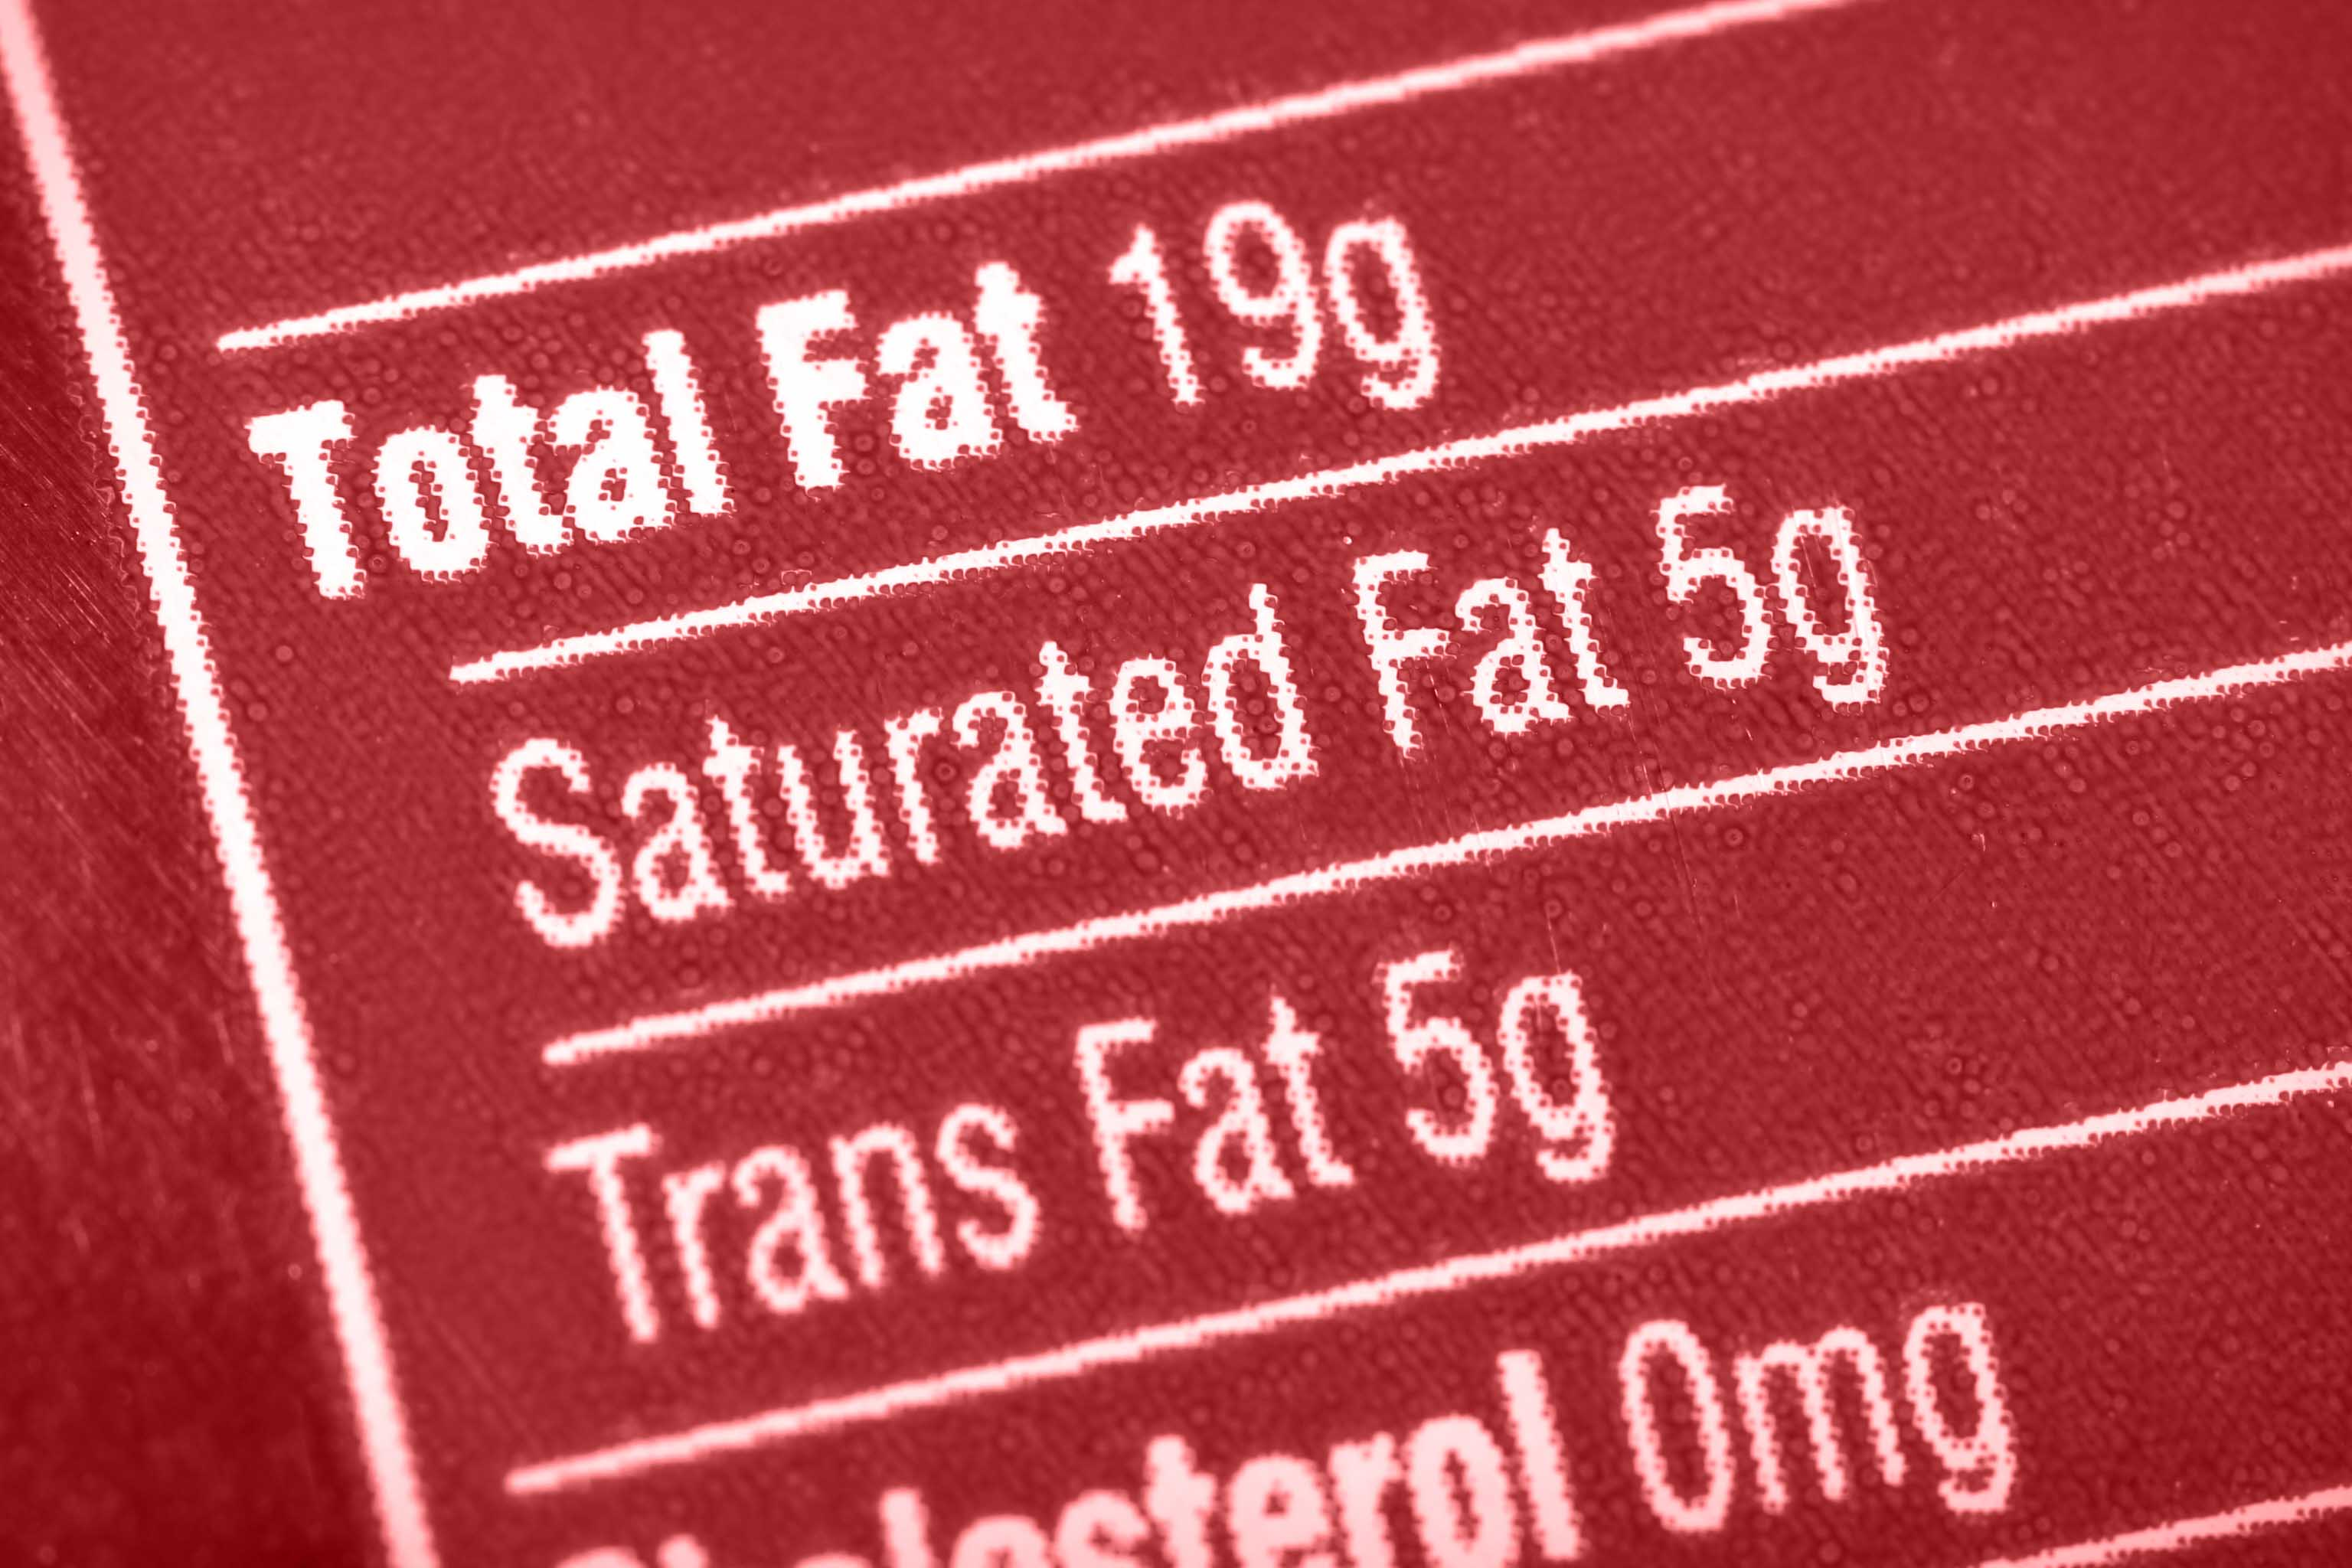 Nutritional label with a focus on fats.